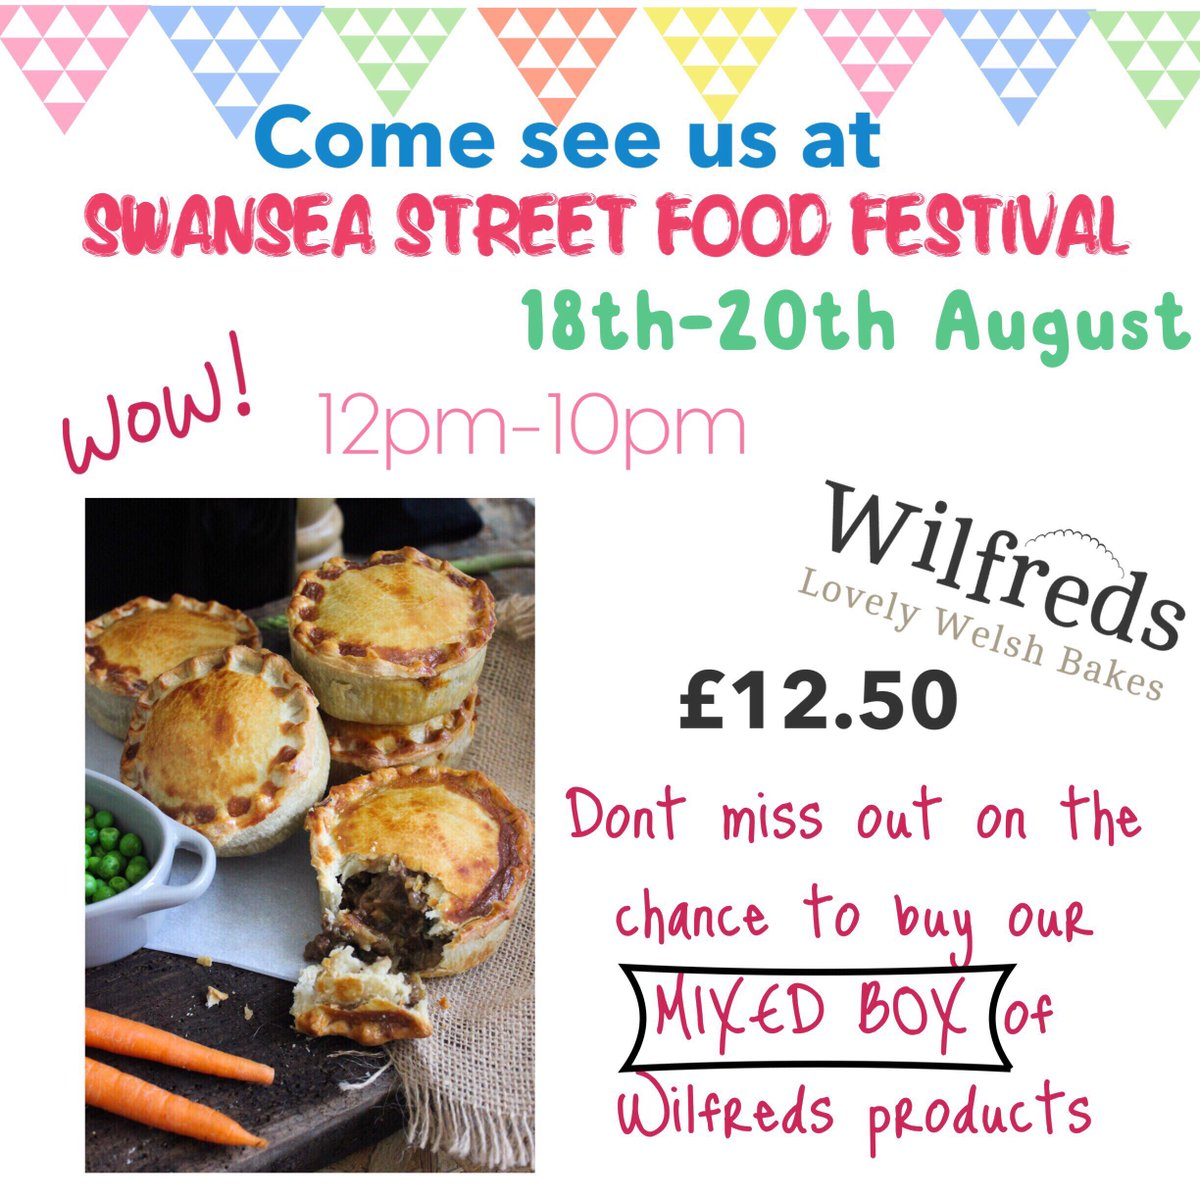 test Twitter Media - Get yourselves down to @SwansStreetFood this weekend for a chance to buy a mixed box of #Wilfredspies @GowerBrewery @collierscheese #Swansea https://t.co/mf2vrRCSXl